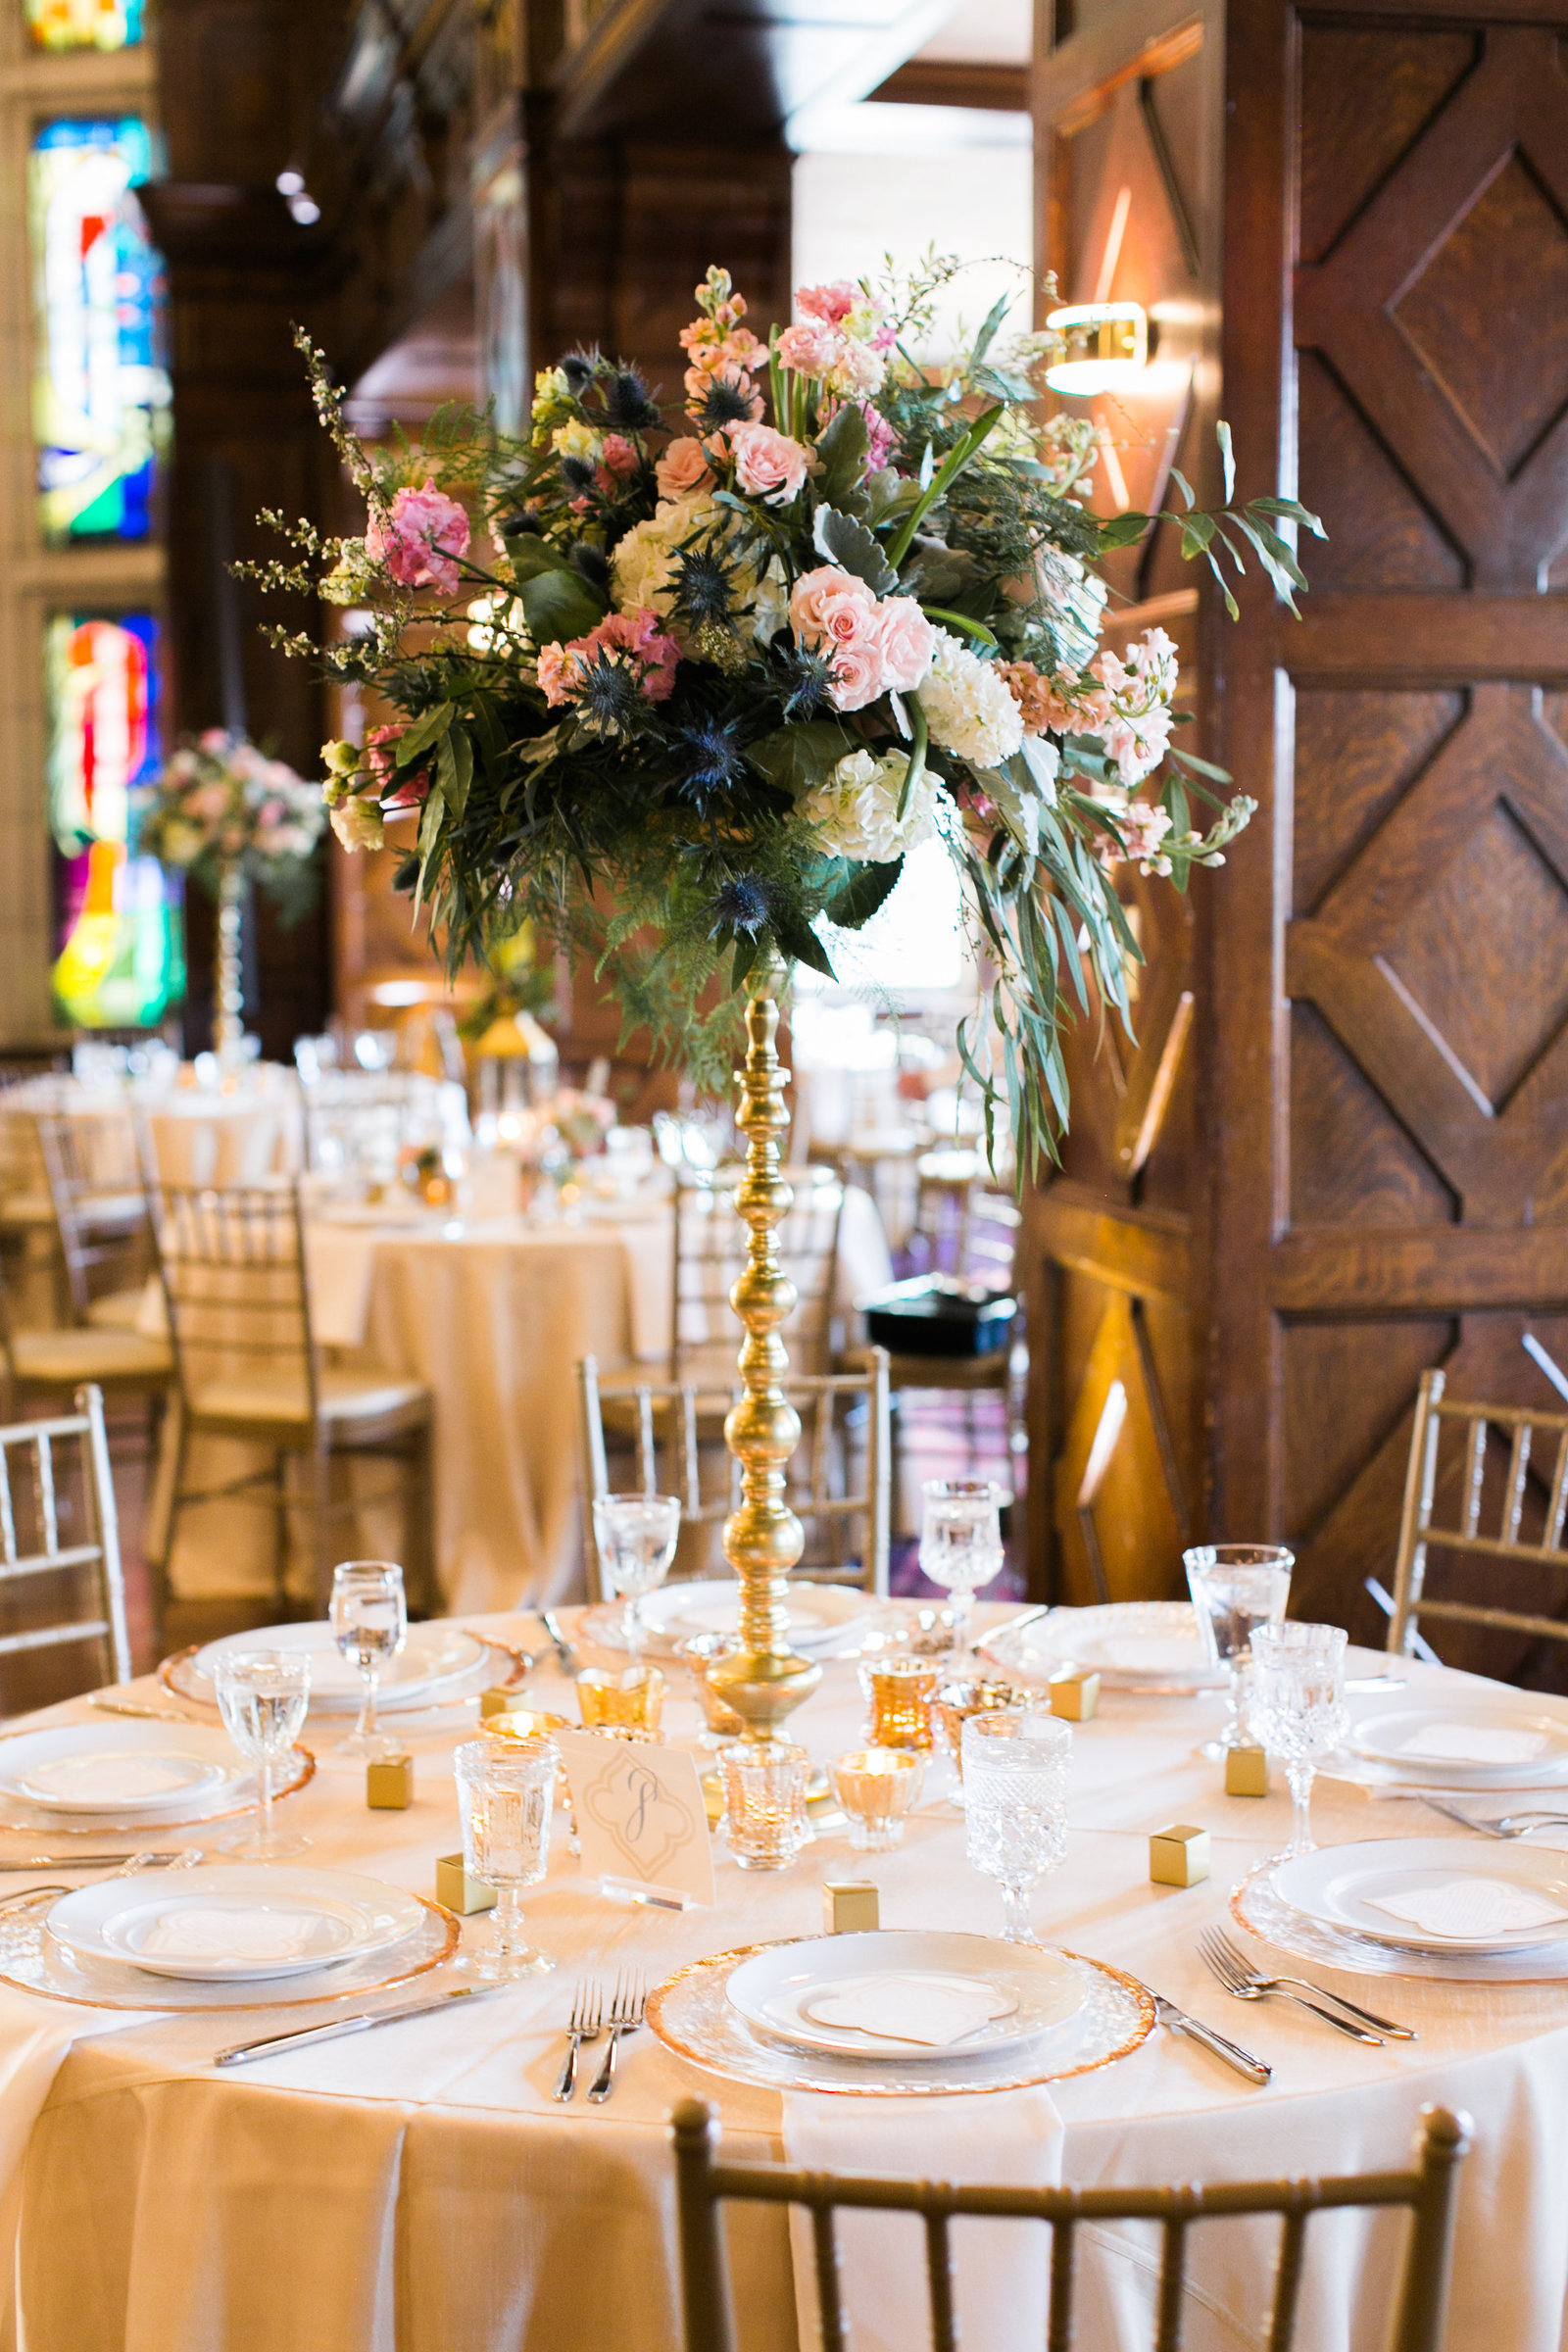 Wedding_Planner_Kansas_City_Madison_Sanders_Events_Brass_on_Baltimore_Spring-654